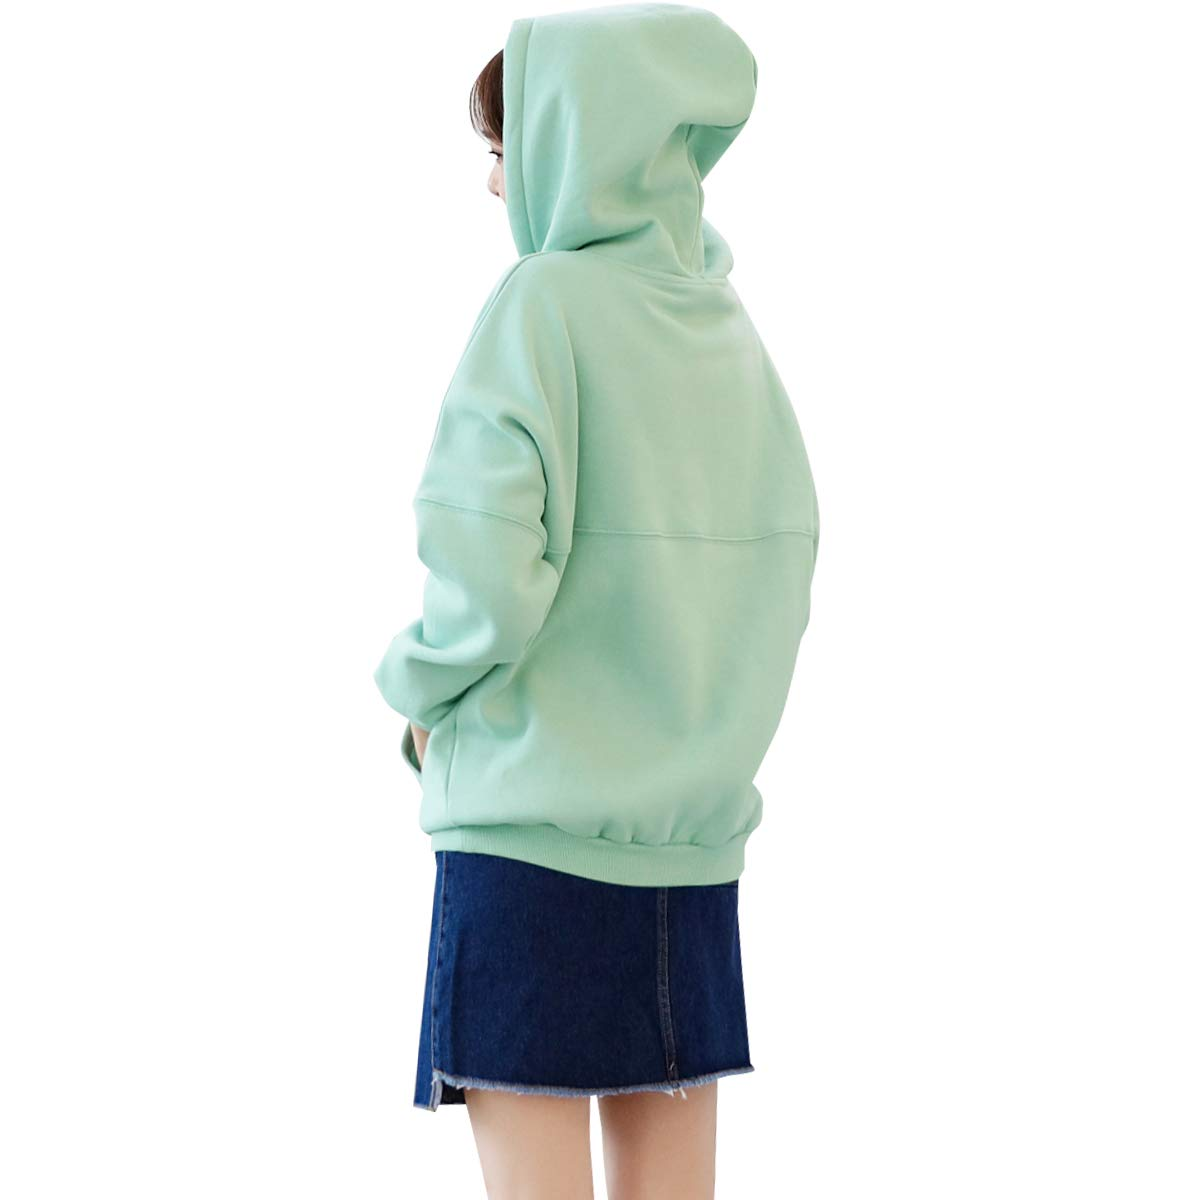 Fashion Sweatshirts (Light Green, Medium)